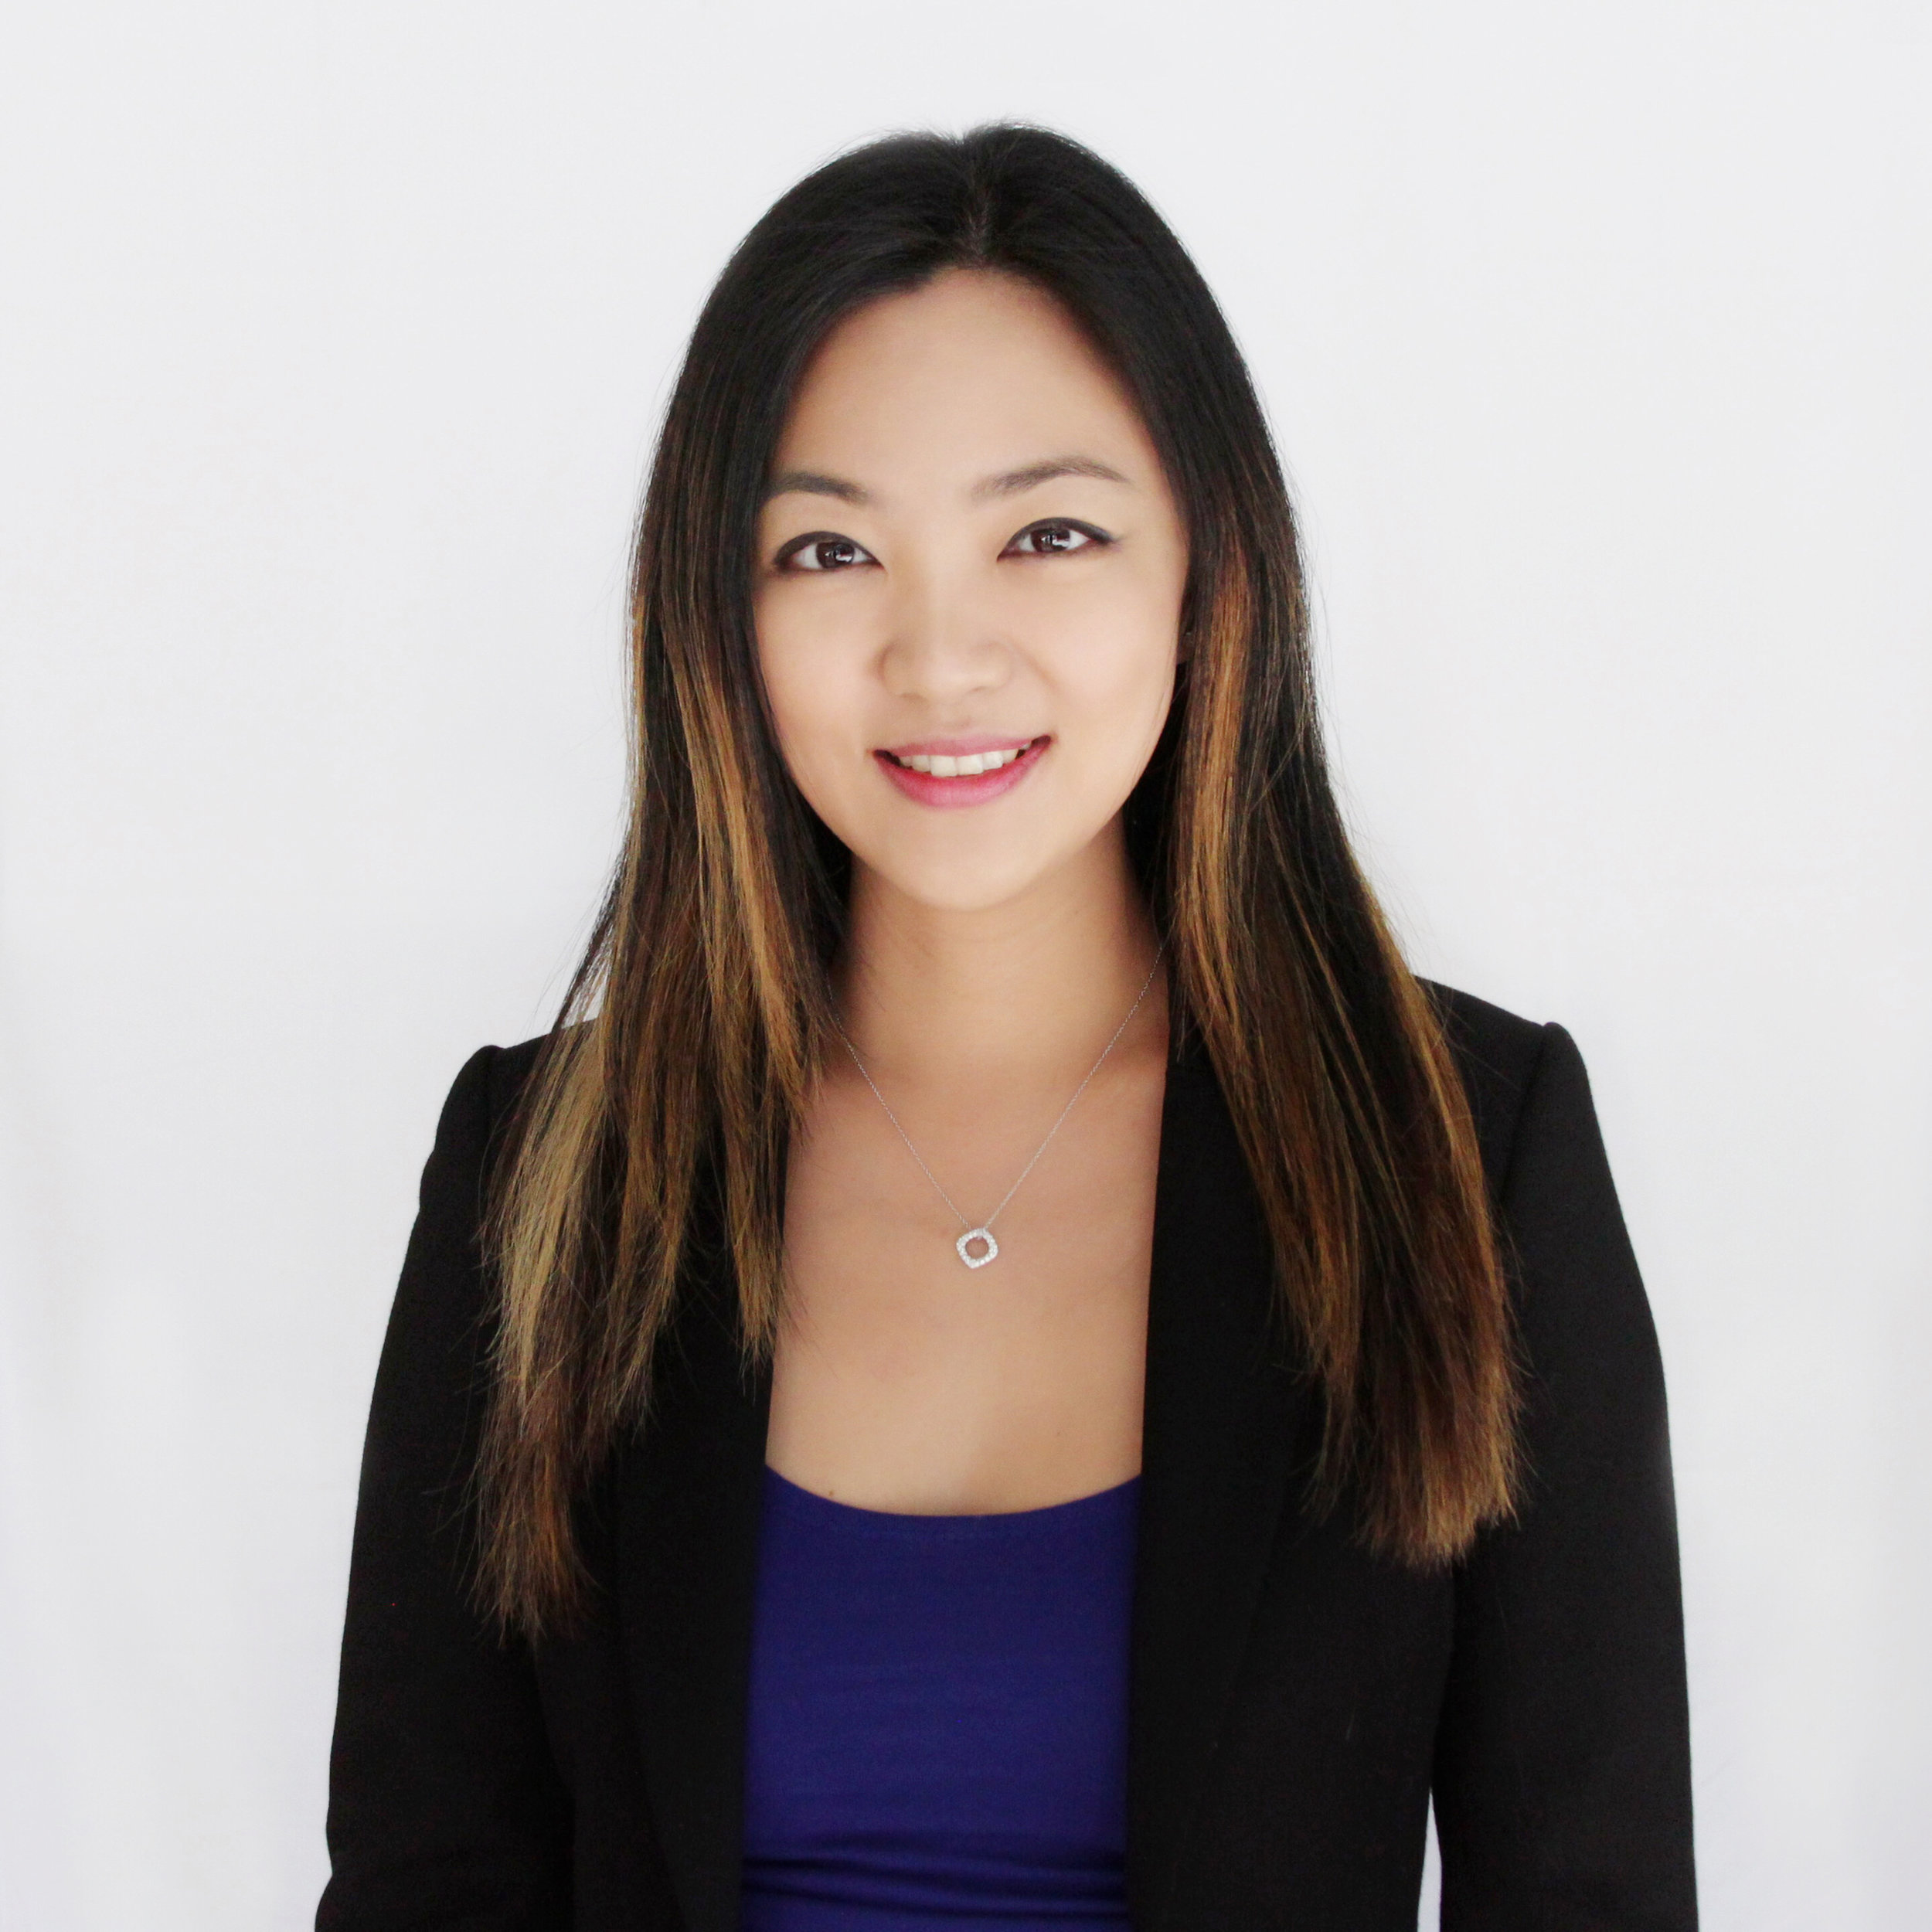 Doris is the owner and co-founder of Opus 1 Music Studio. She teaches students at all ages and all levels. She is experienced in exam preparation in both CM and ABRSM exams. Her students won local competitions and perform at Carnegie Hall.  B.A. in Music from University of British Columbia.